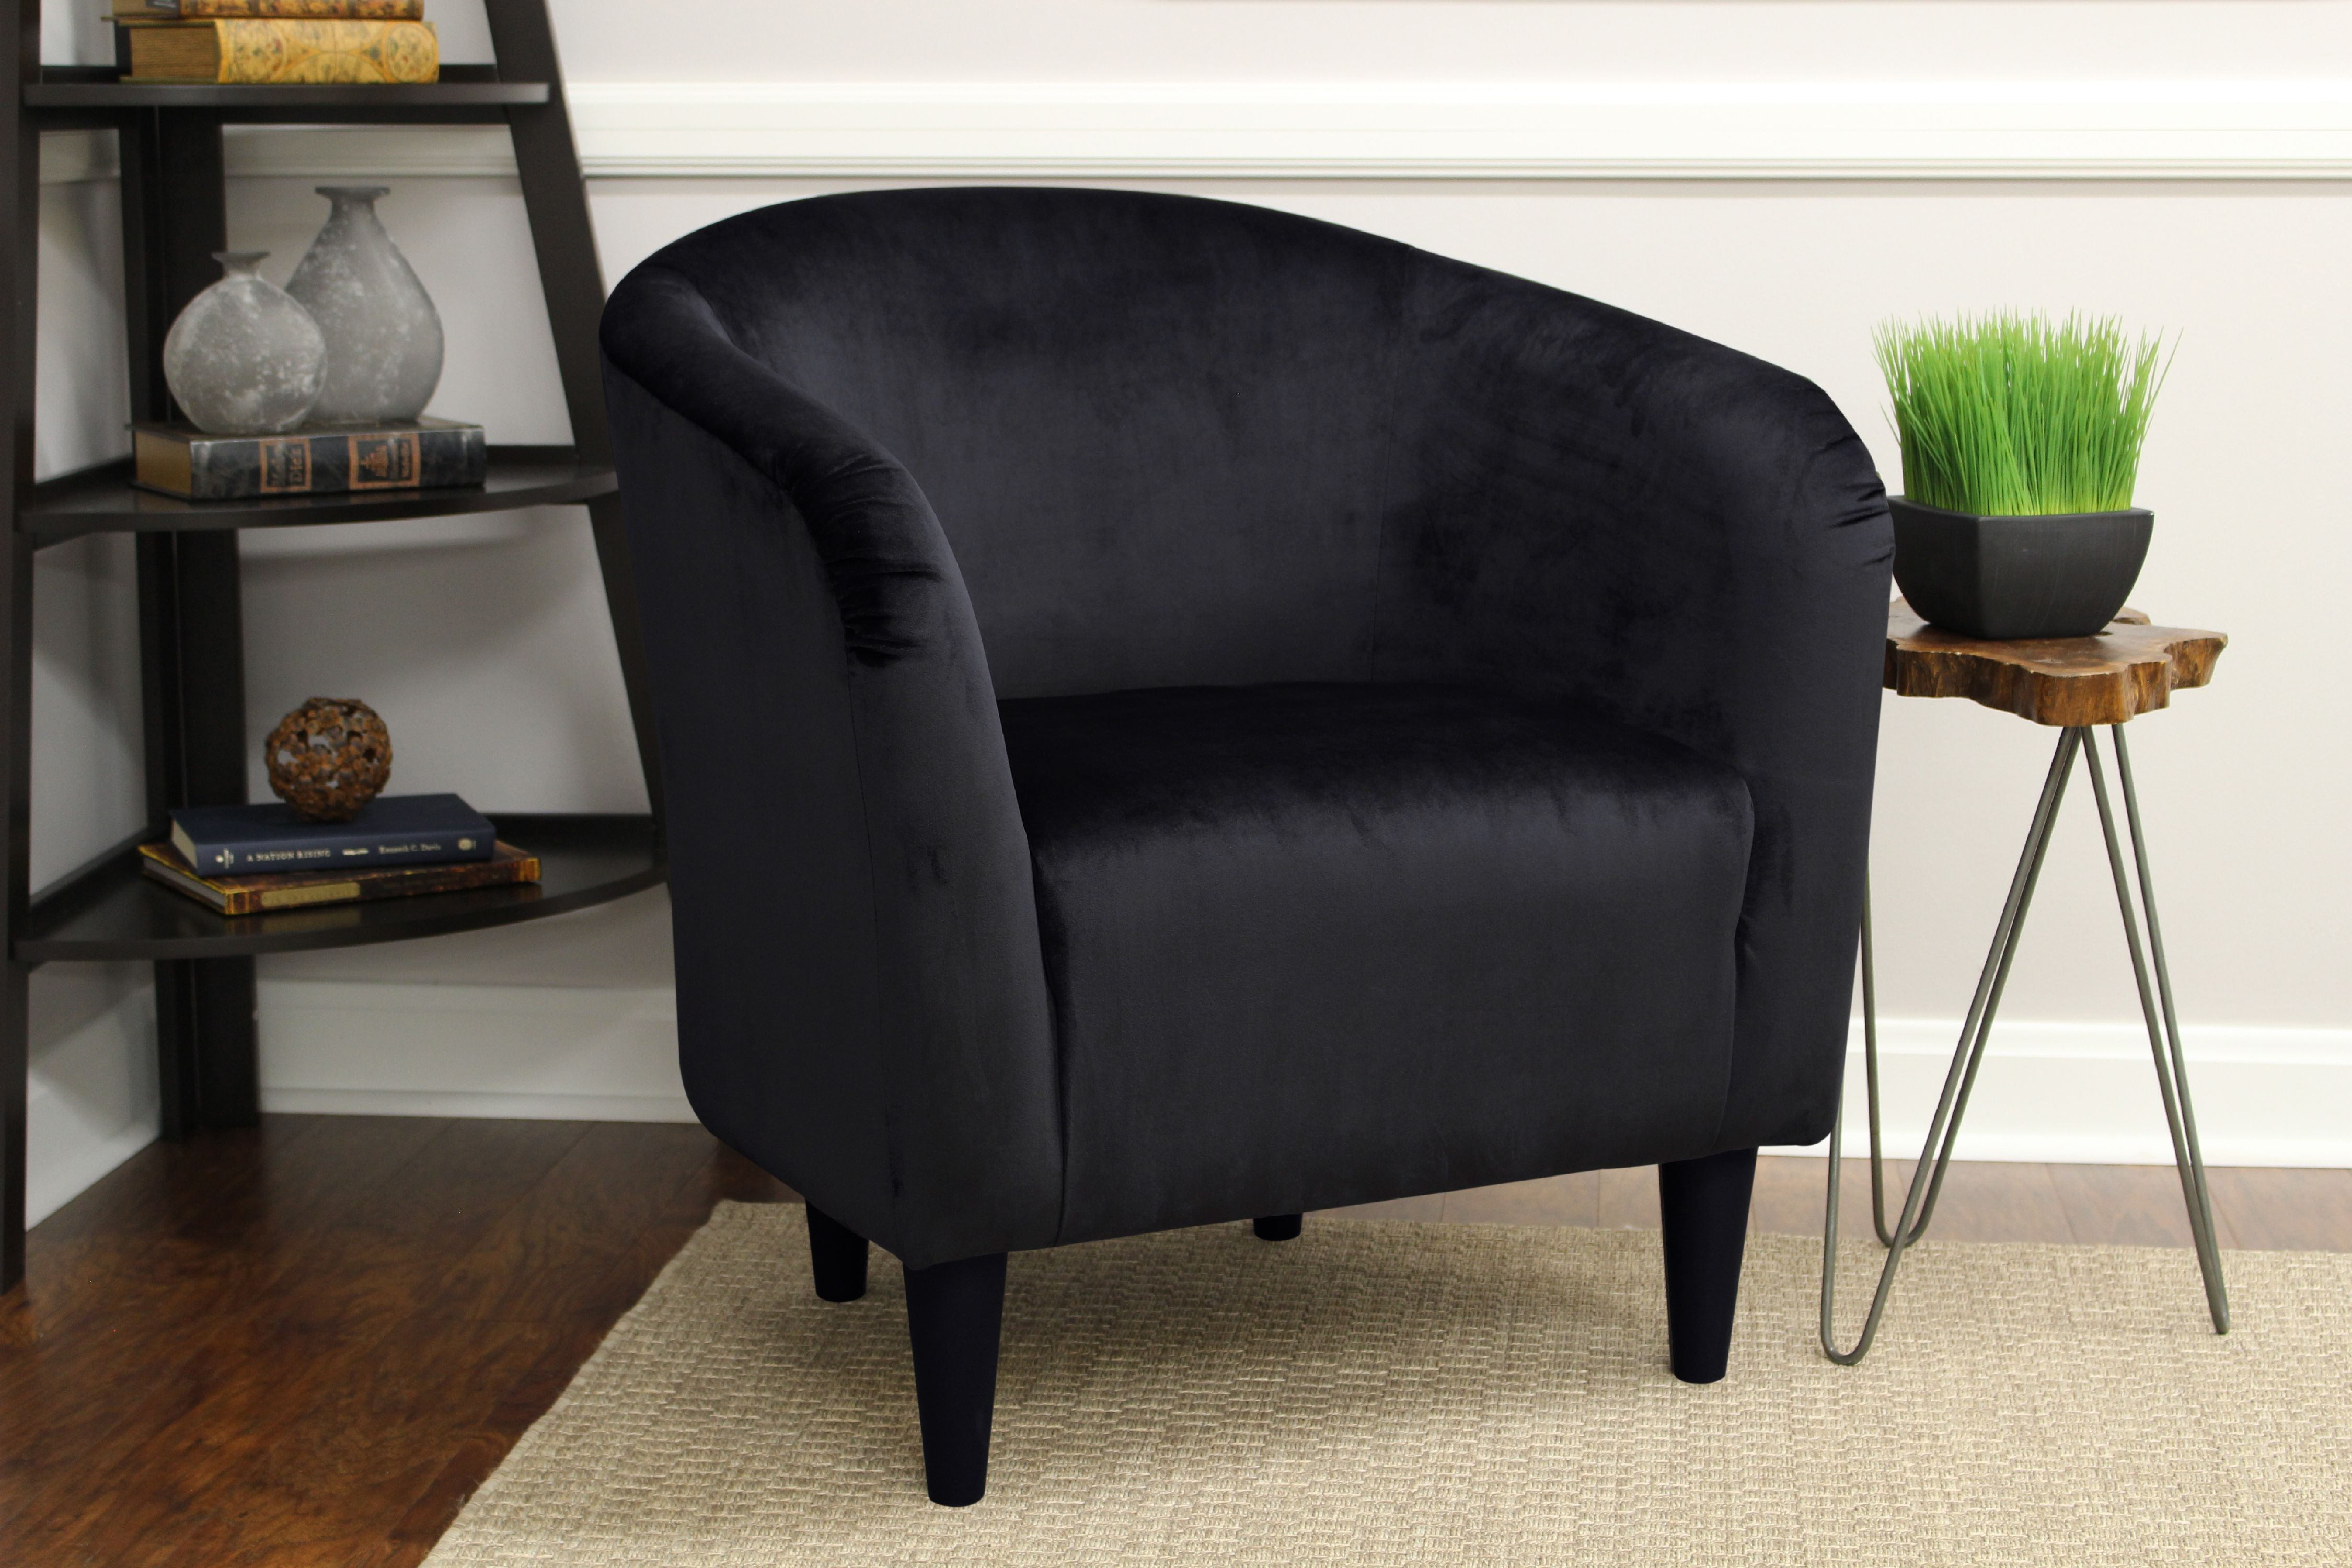 Mainstays Microfiber Tub Accent Chair Black Walmart Com Black Living Room Chairs Accent Chairs Arm Chairs Living Room [ 3000 x 4500 Pixel ]